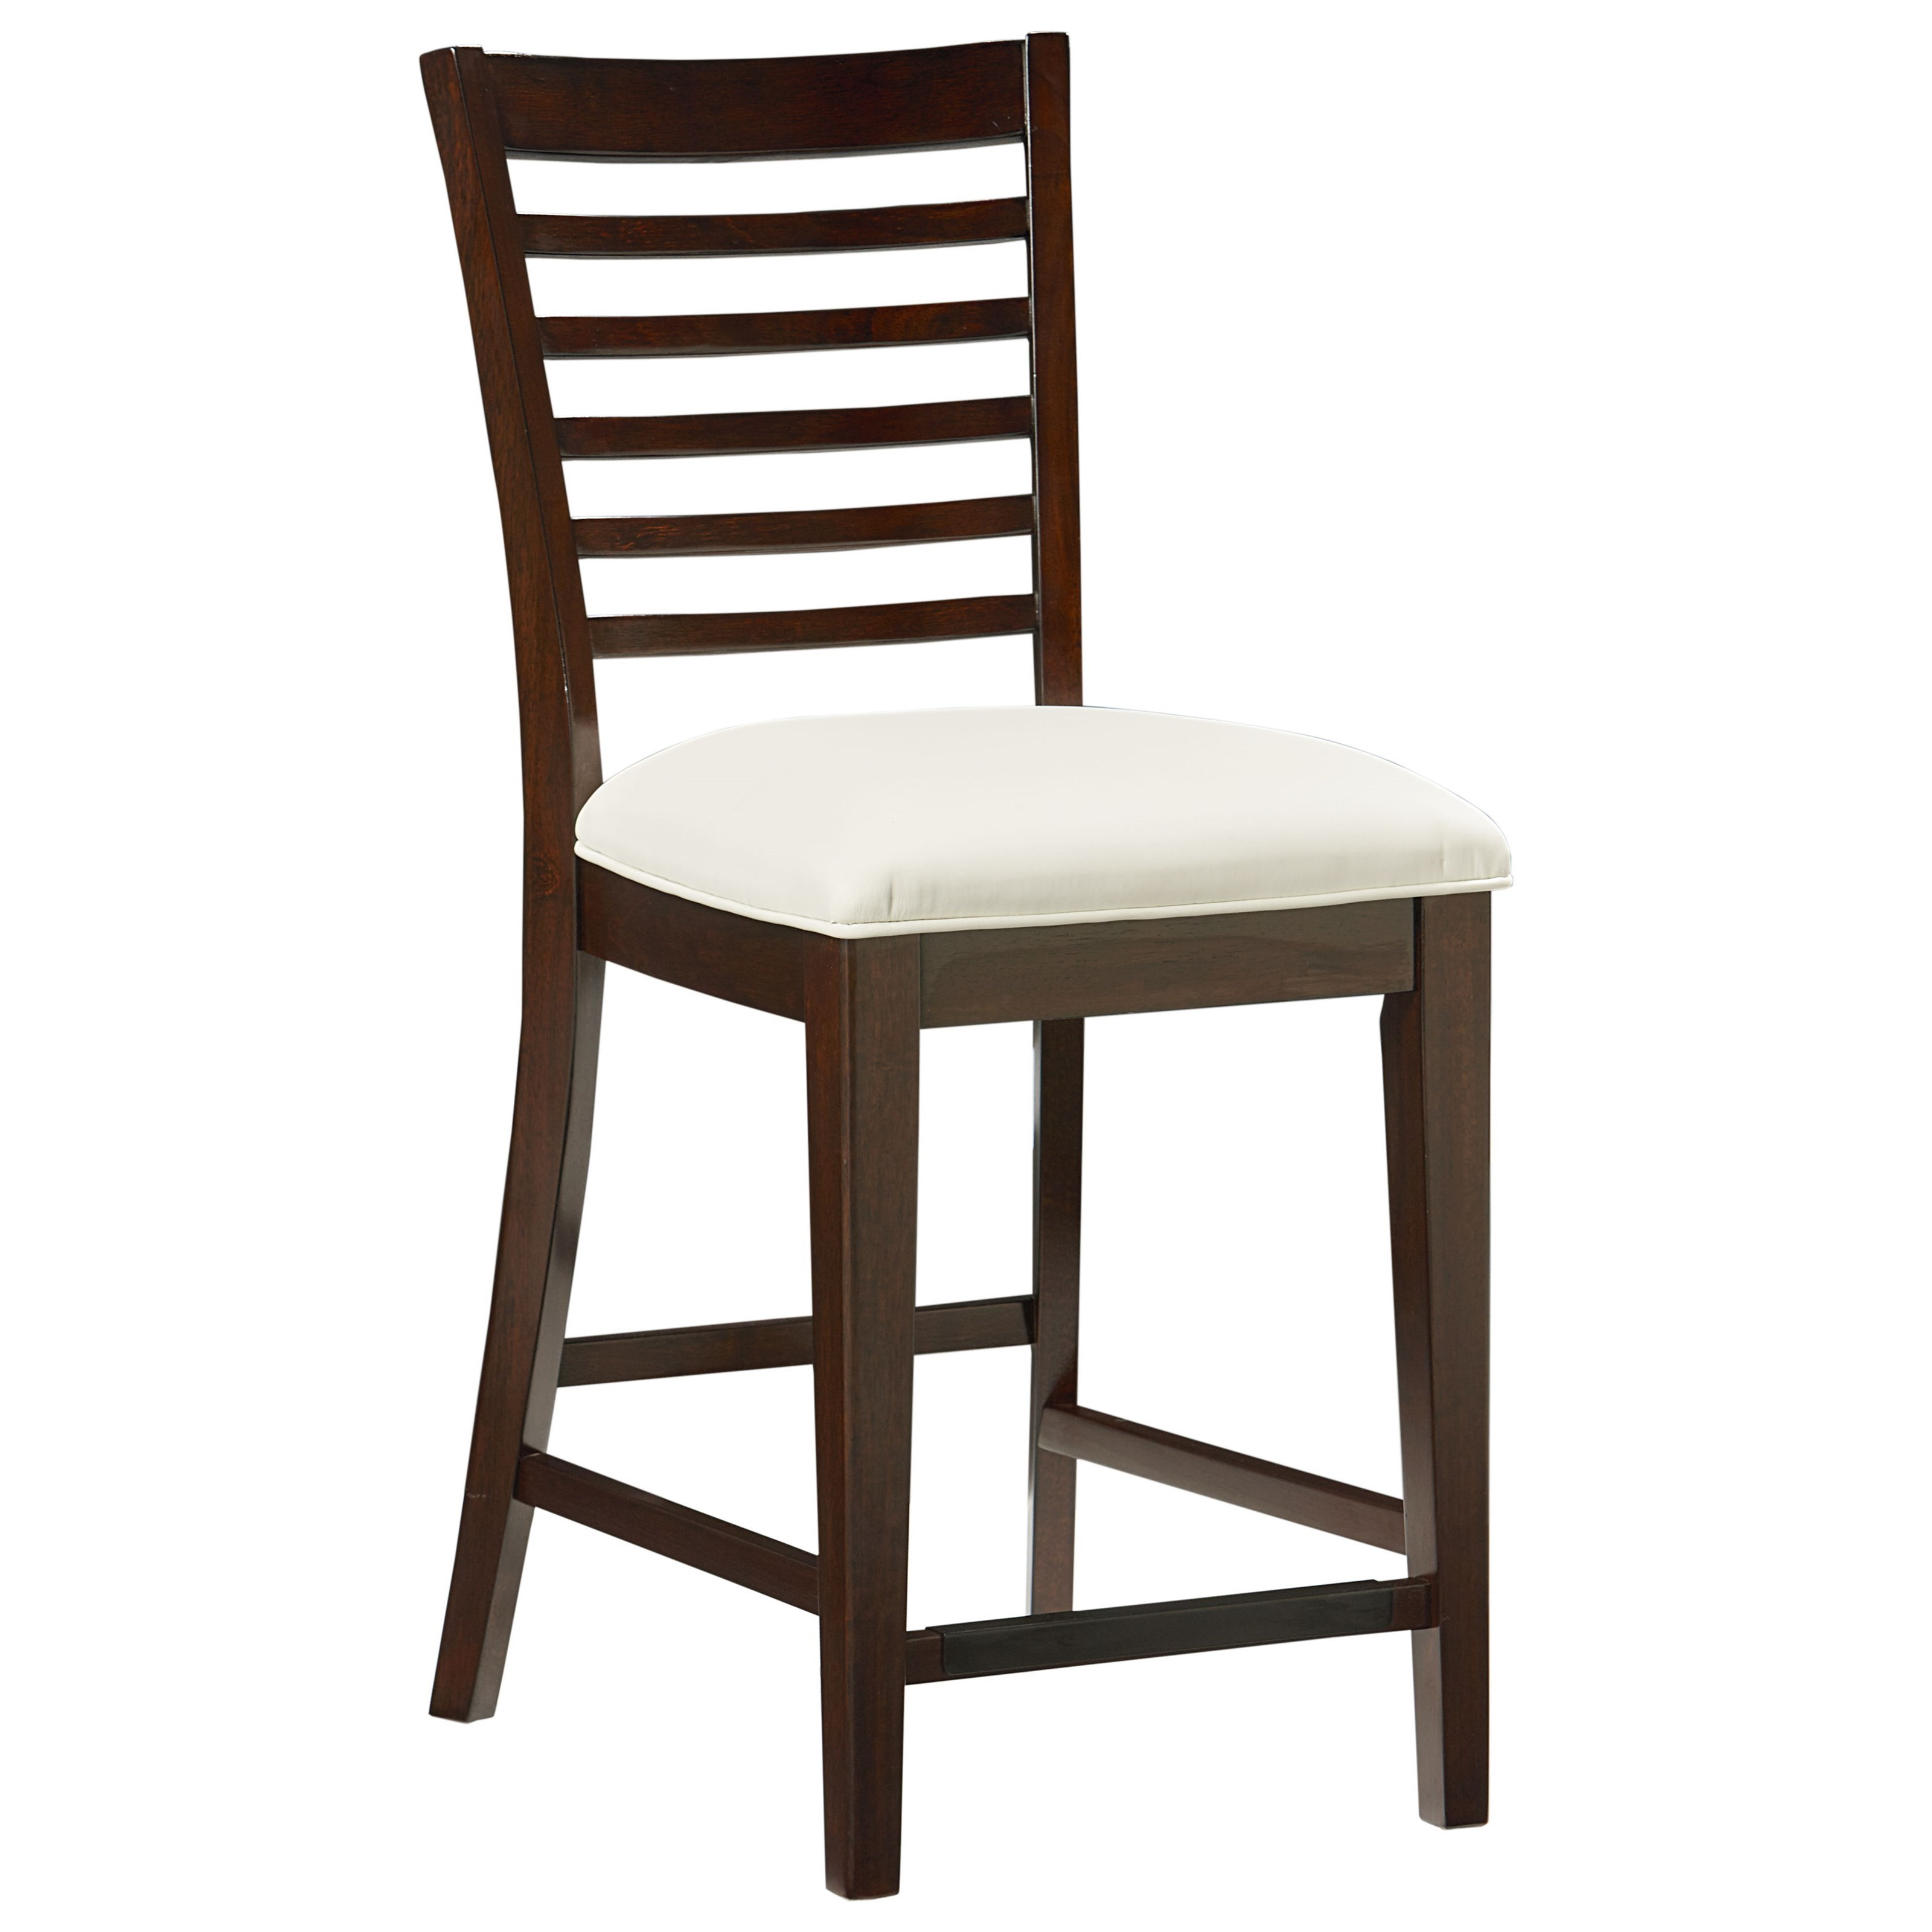 Standard Furniture Noveau Counter Height Stool - Item Number: 17574